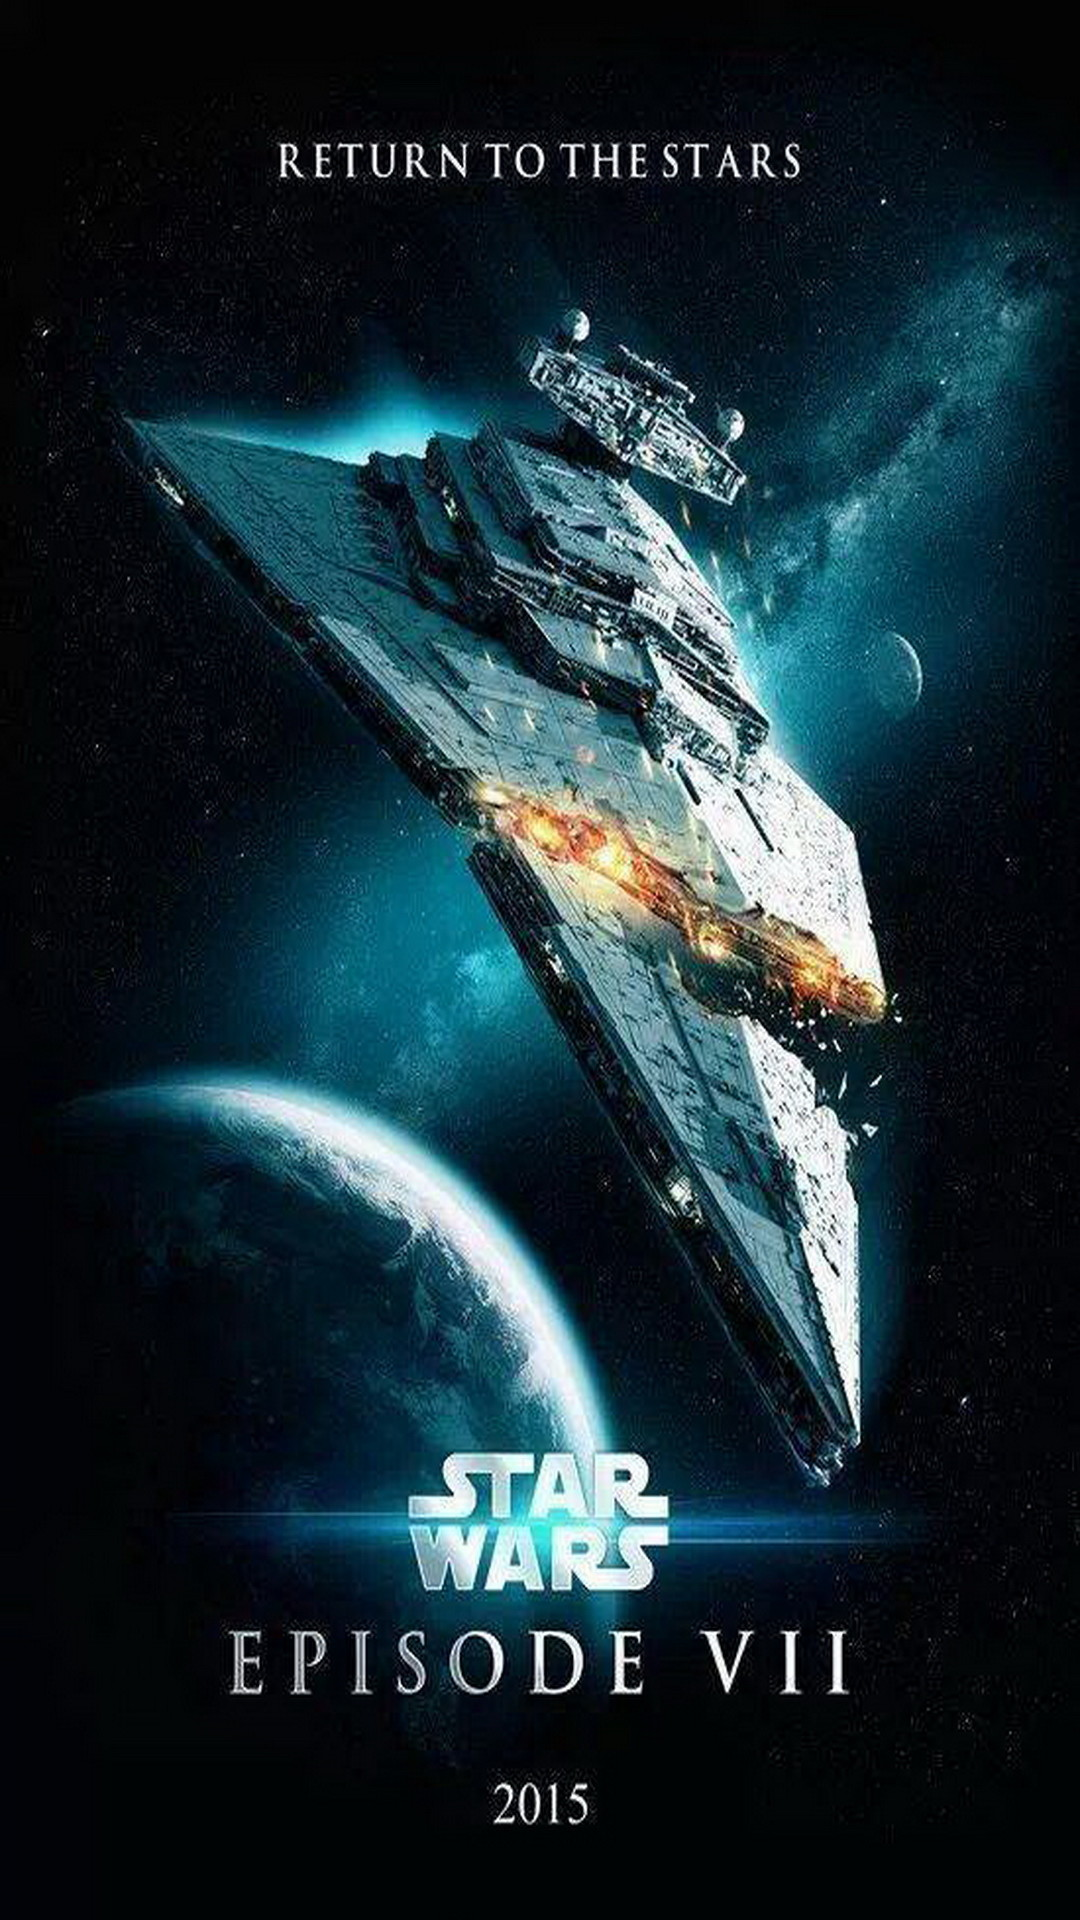 star wars iphone 5 wallpaper (65+ images)